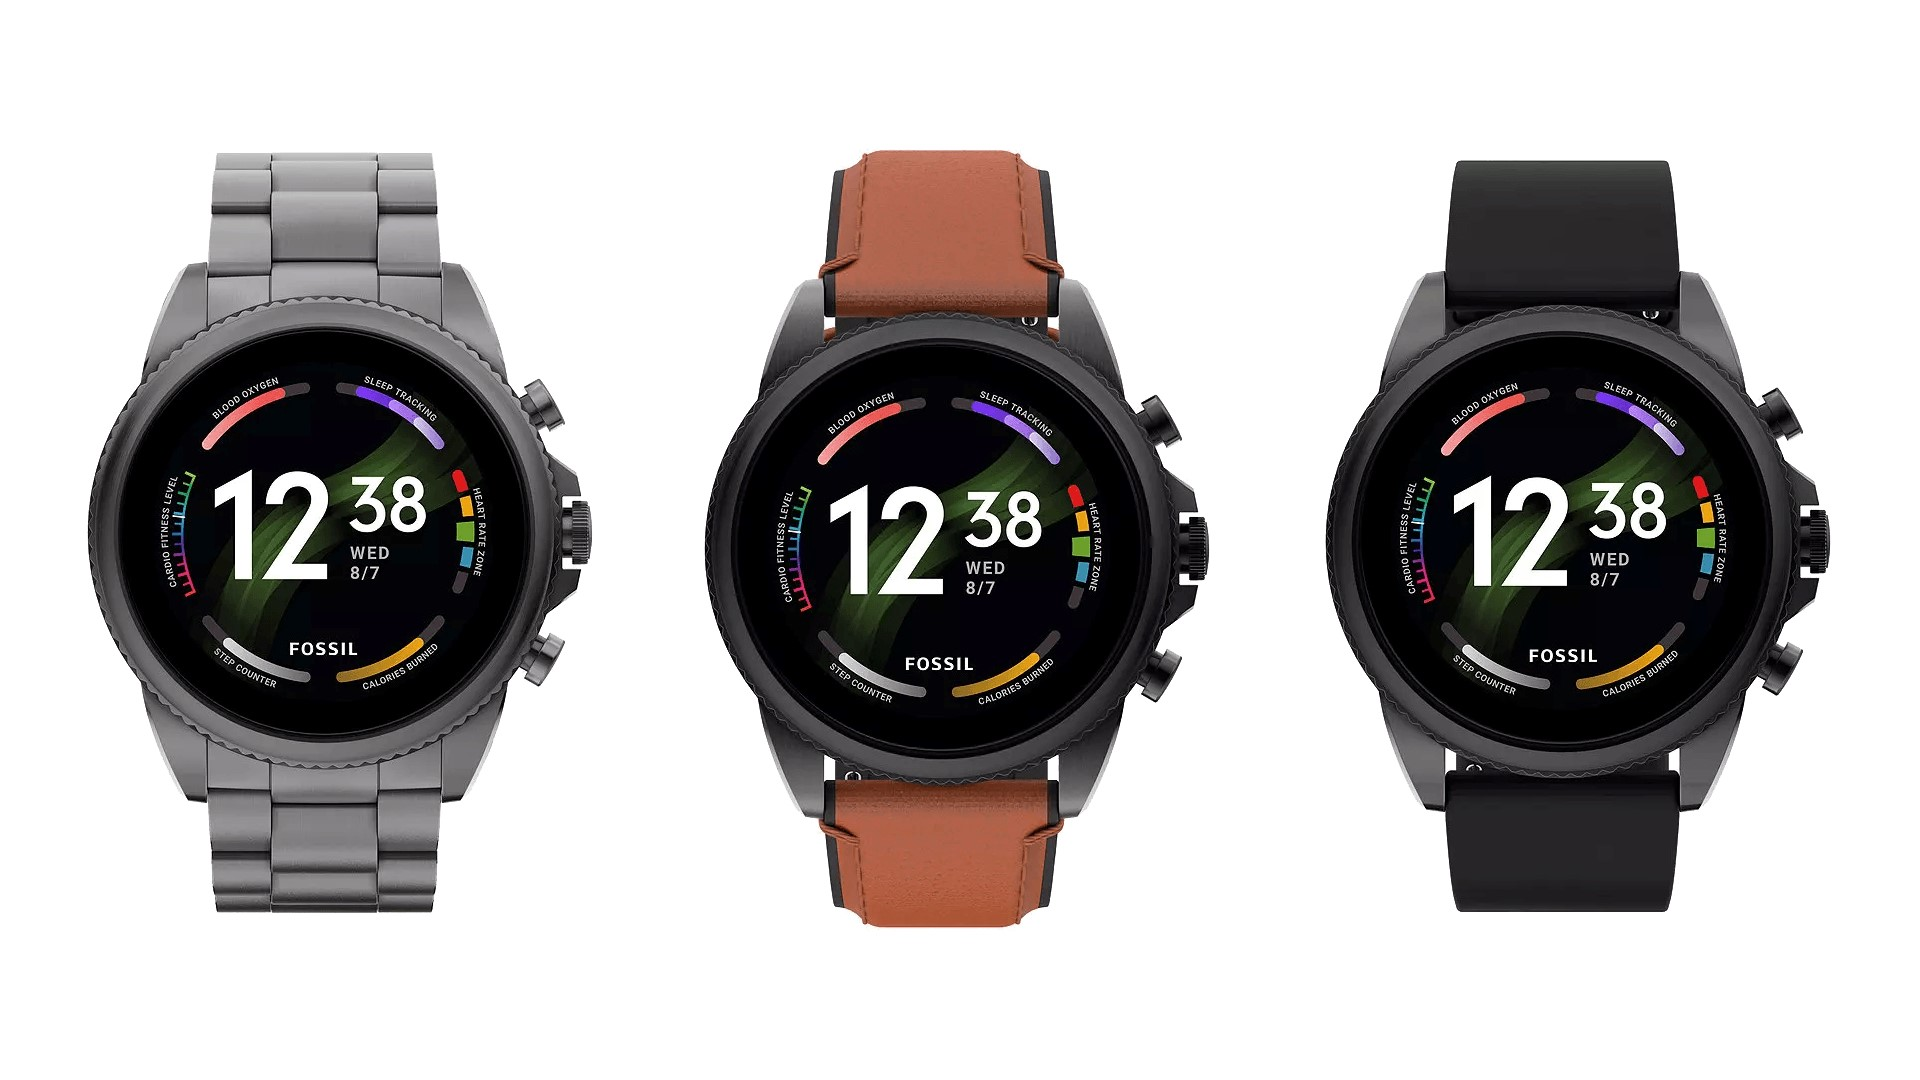 Fossil Gen 6: Smartwatch leaks again with a familiar design, an outdated  SoC and probably Wear OS 2, but it could still be the best Wear OS device  for Android fans -